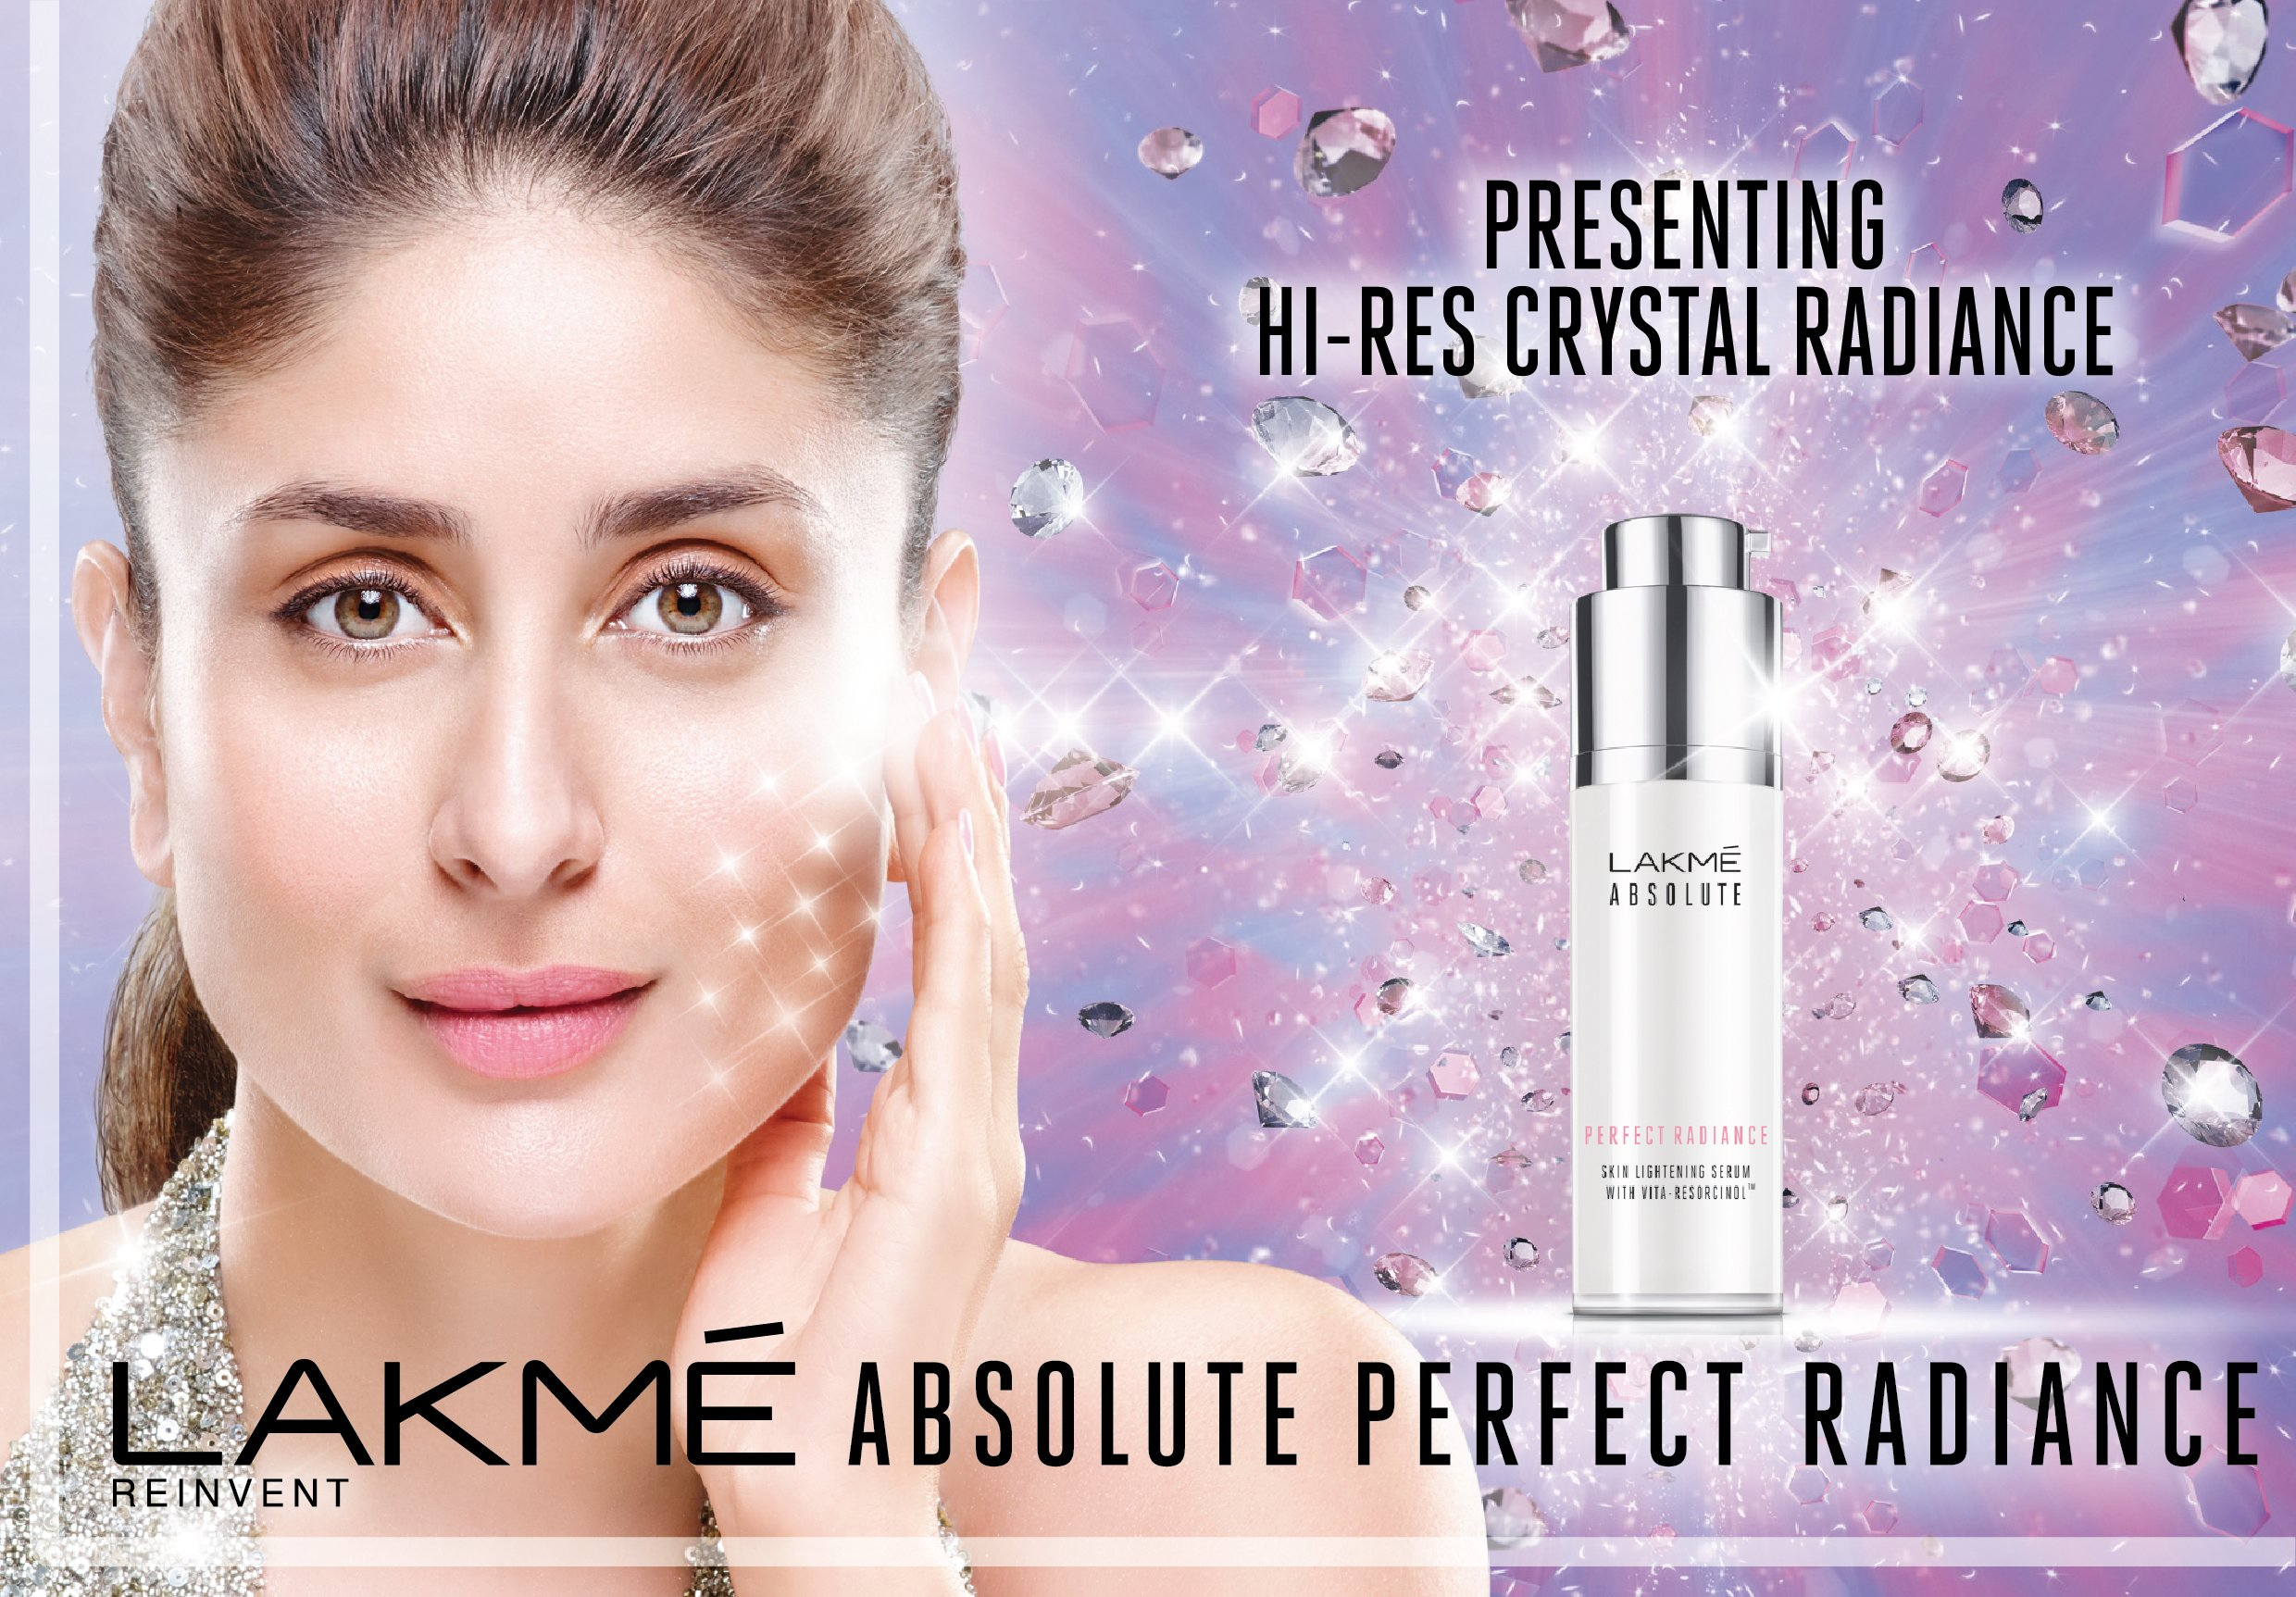 Lakmé Absolute Perfect Radiance range review